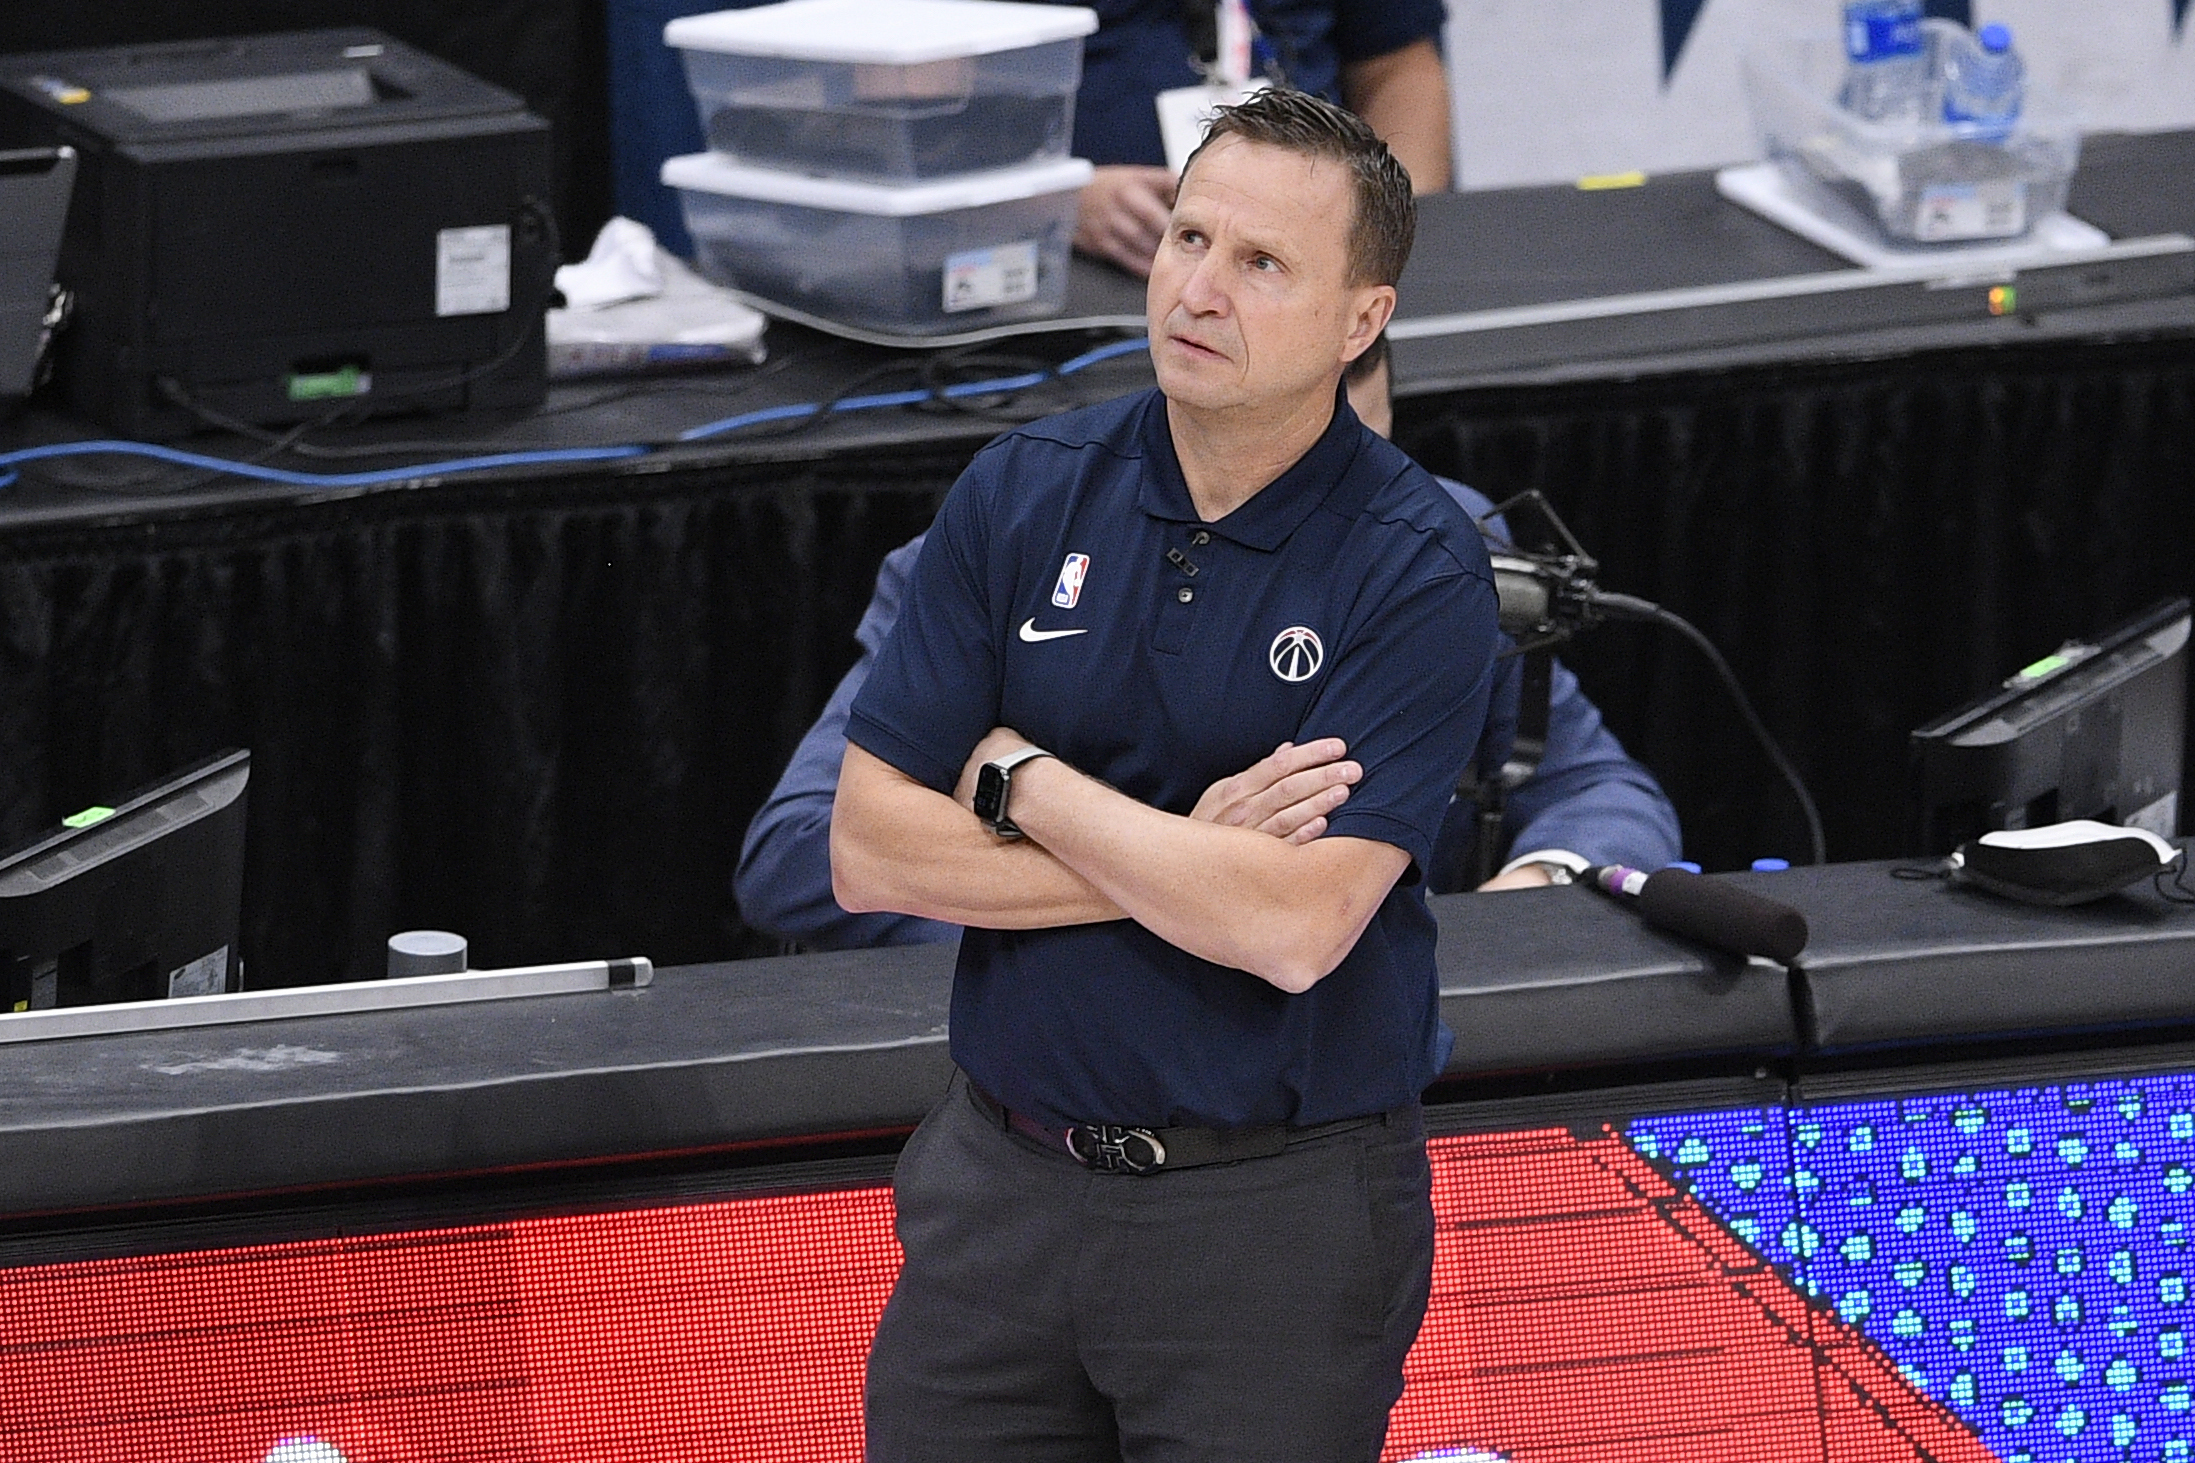 The Wizards parted way with coach Scott Brooks this week, adding to a long list of coaching vacancies.